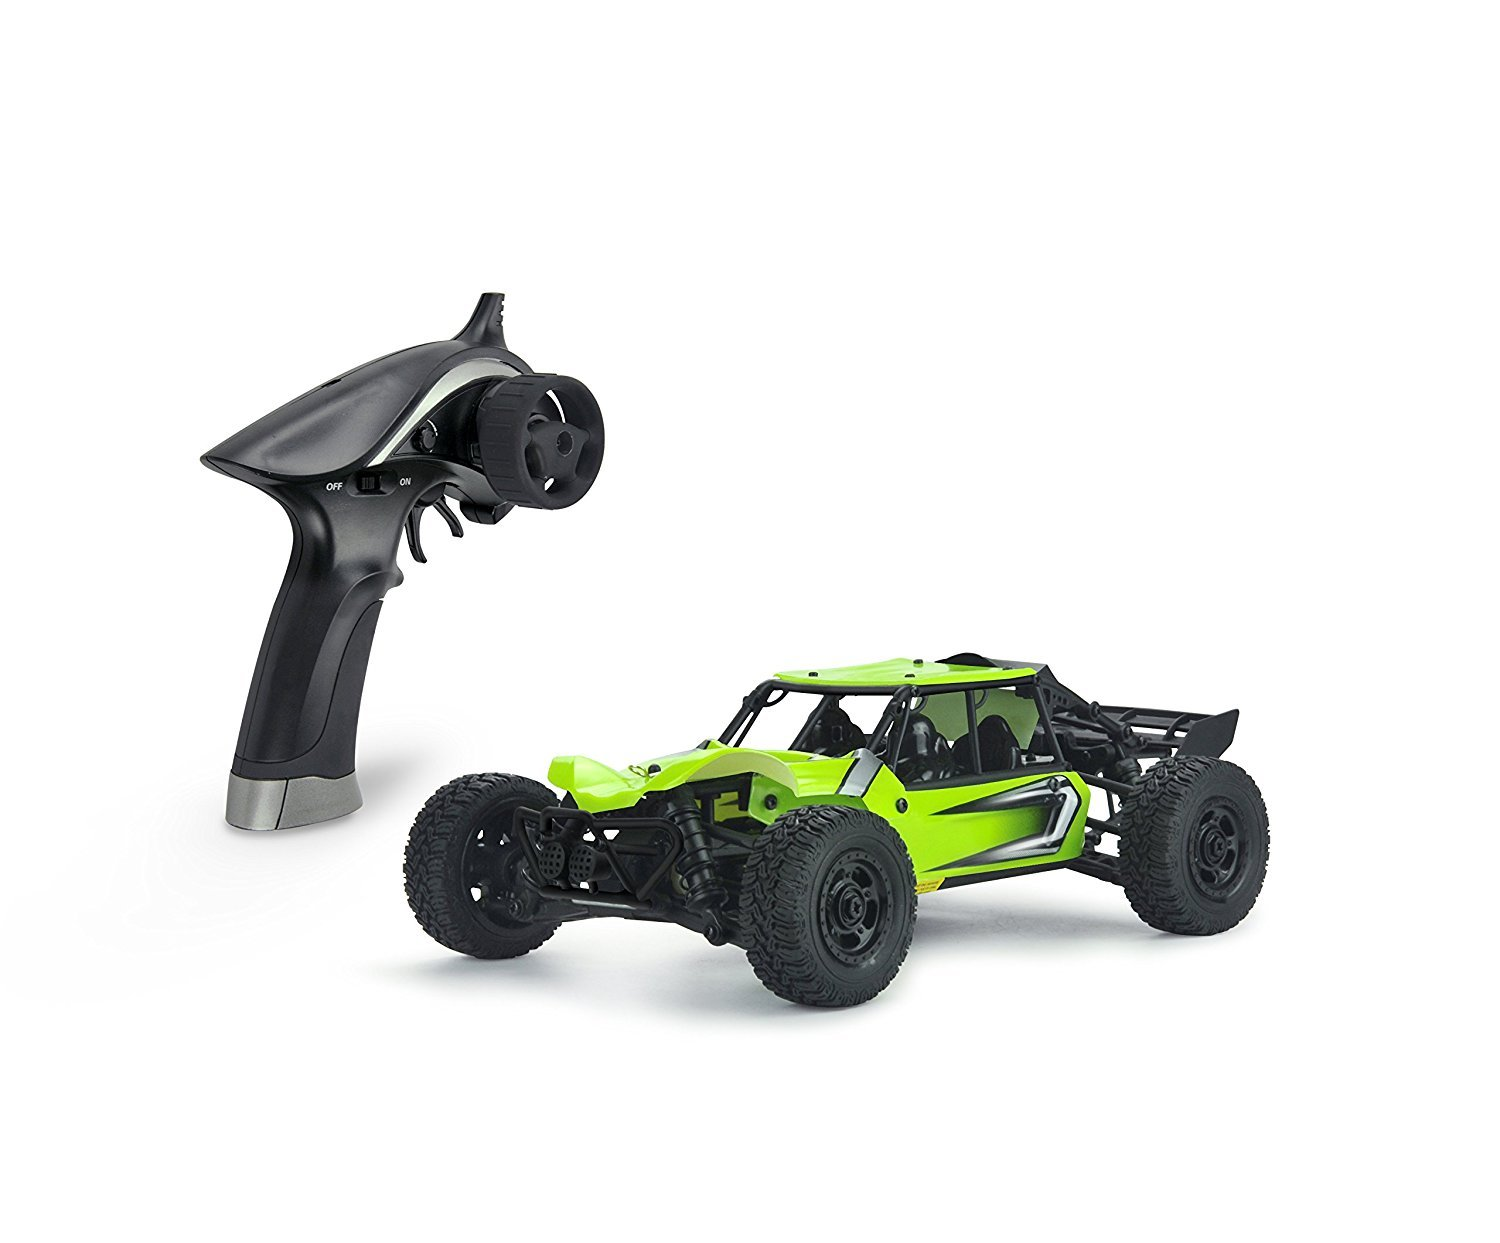 SGOTA RC Car 1 18 Scale High-Speed Remote Control Car Off-Road 4WD Radio Controlled Electric Vehicle (Meadum)